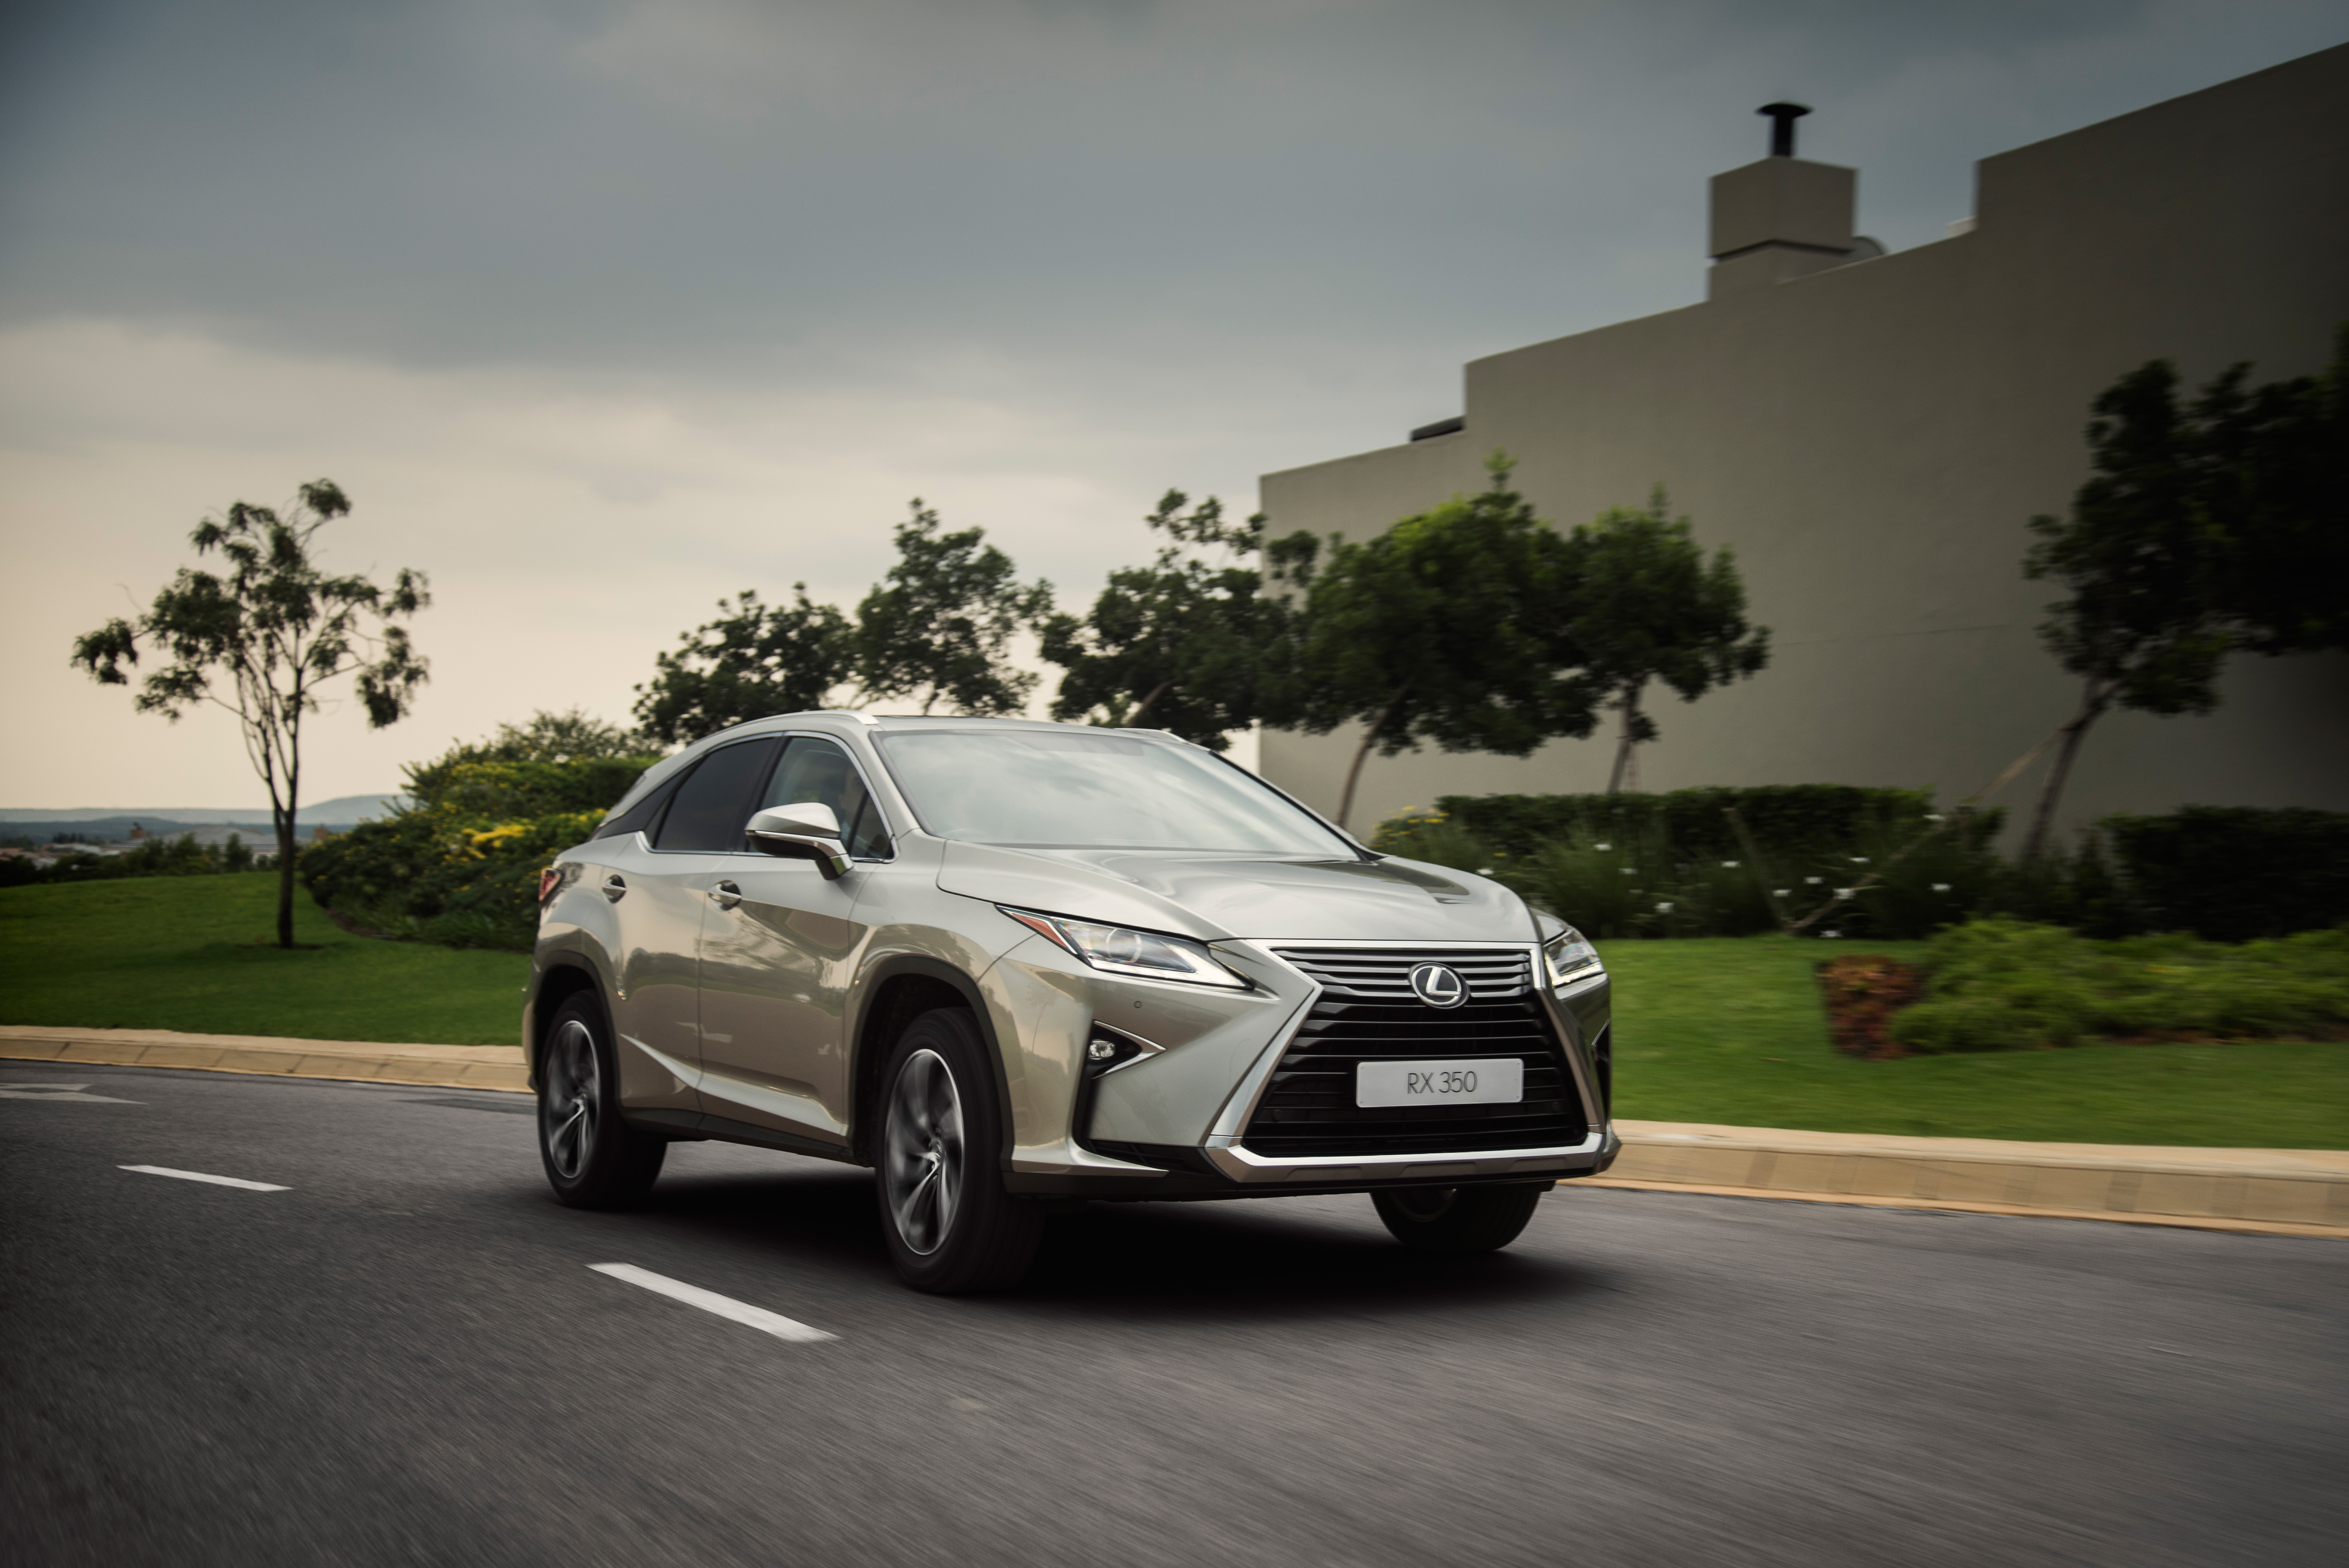 the all-new lexus rx makes its south african debut - barloworld